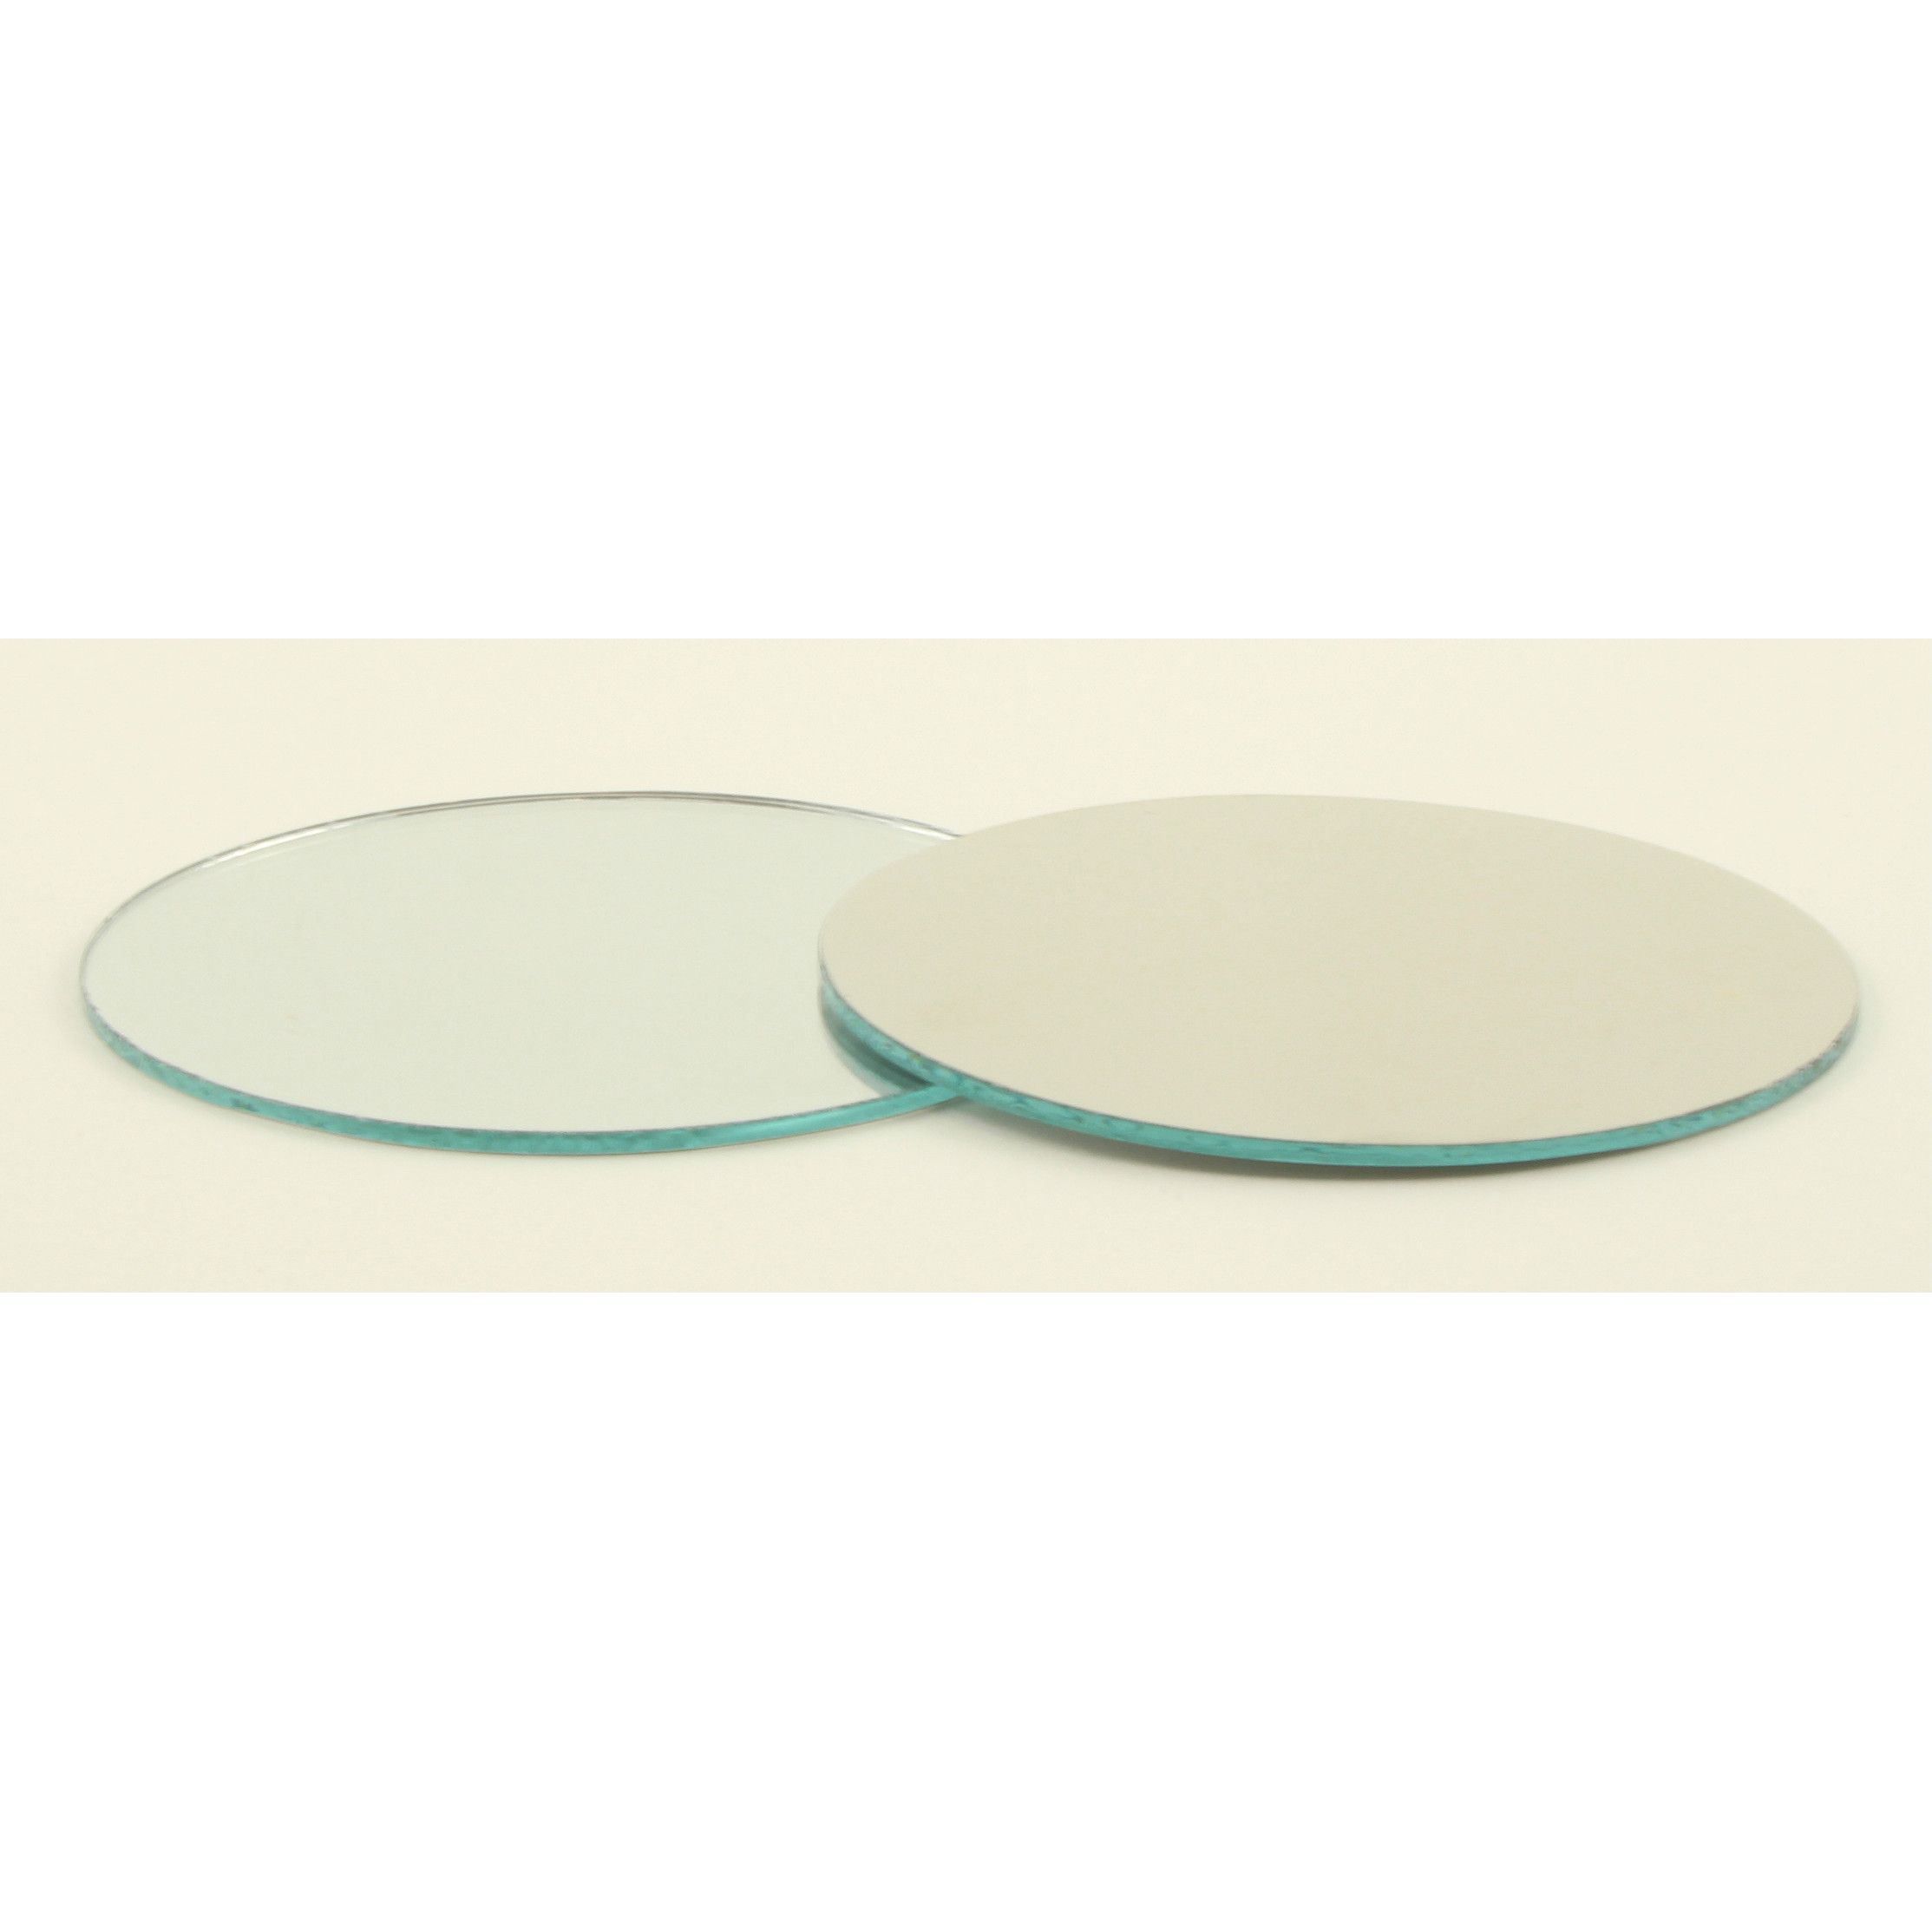 Small Mirror Pieces: 2.5 Inch Glass Craft Small Round Mirrors 24 Pieces Mosaic